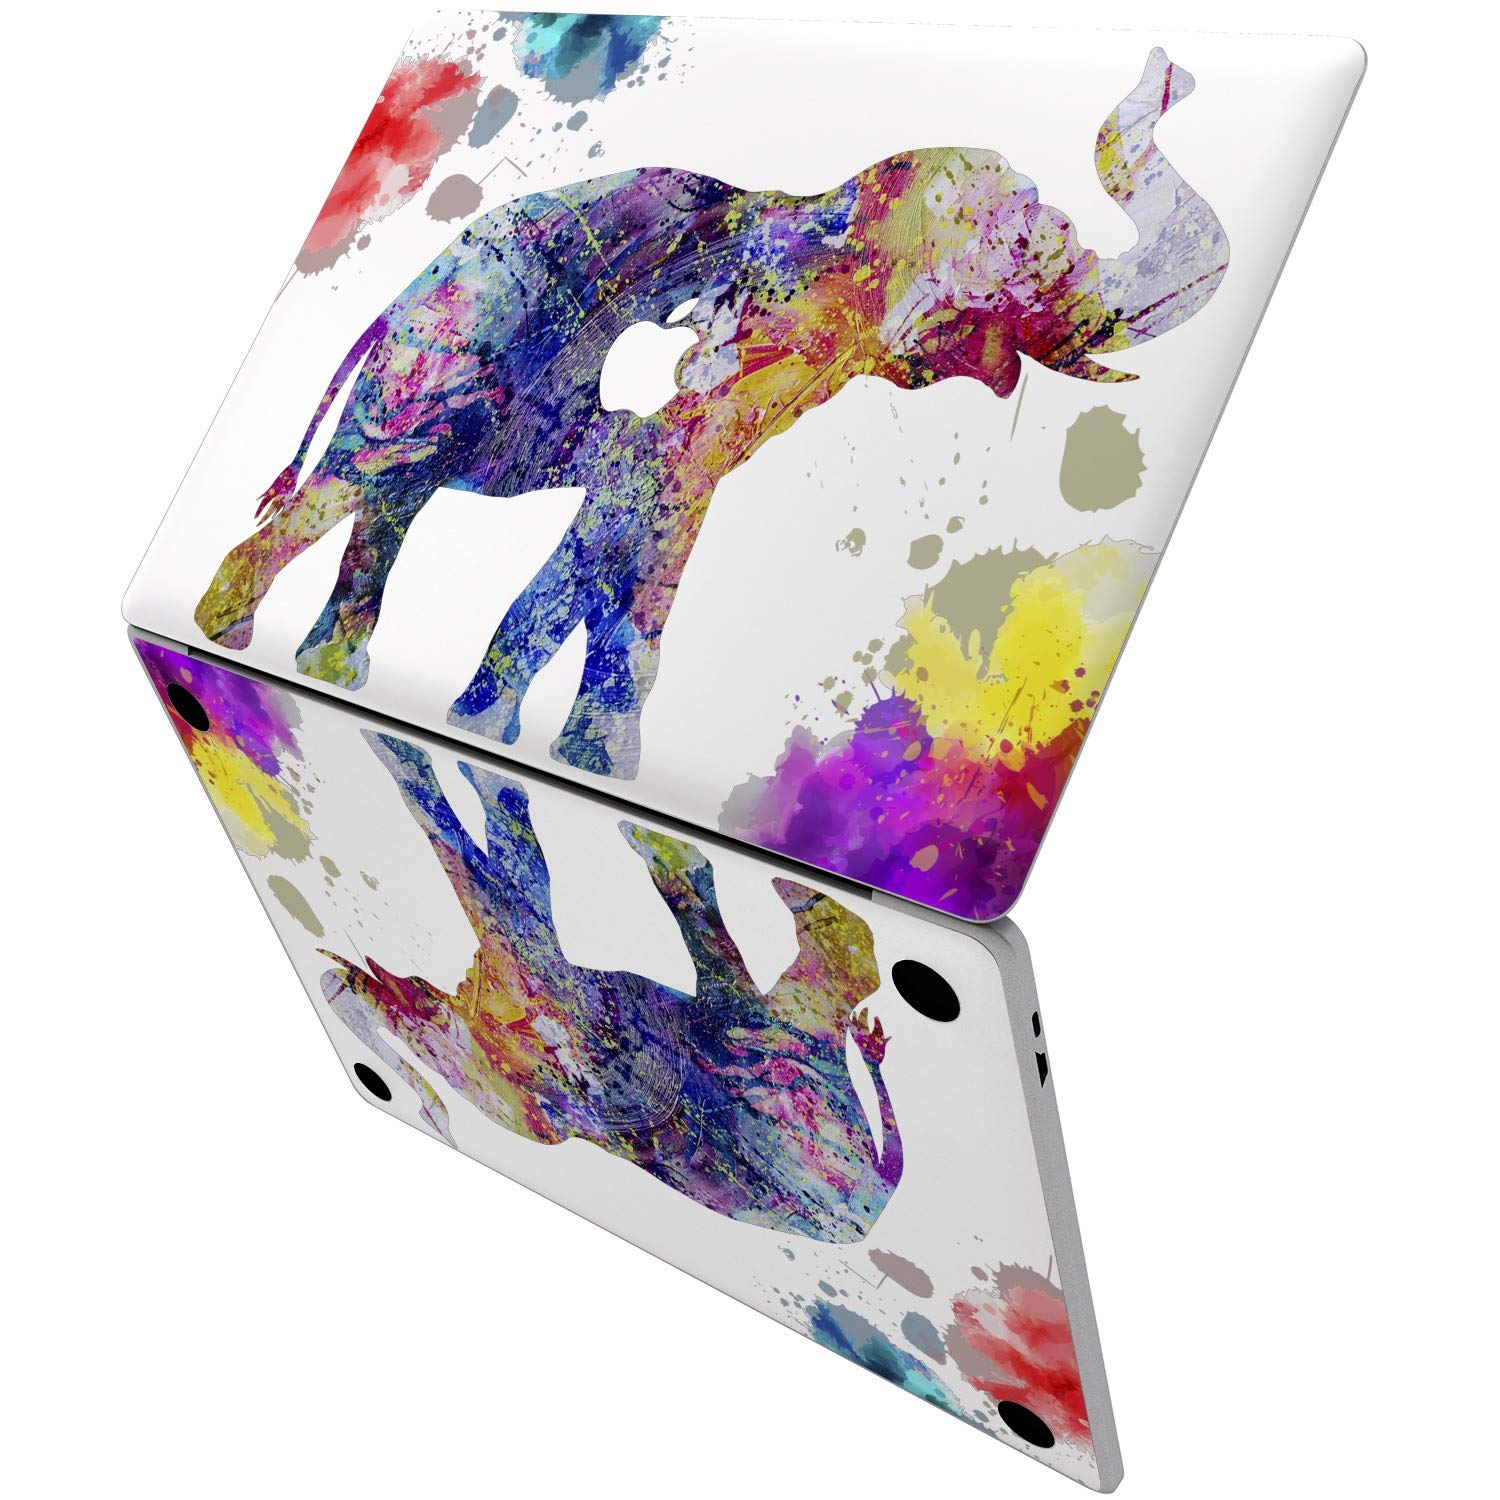 Lex Altern Vinyl Skin for MacBook Air 13 inch Mac Pro 15 Retina 12 11 2019 2018 2017 2016 2015 Watercolor Splash Pattern Nature Pink Elephant Touch Bar Laptop Cover Keyboard Decal Sticker Wrap Girl by Lex Altern (Image #6)